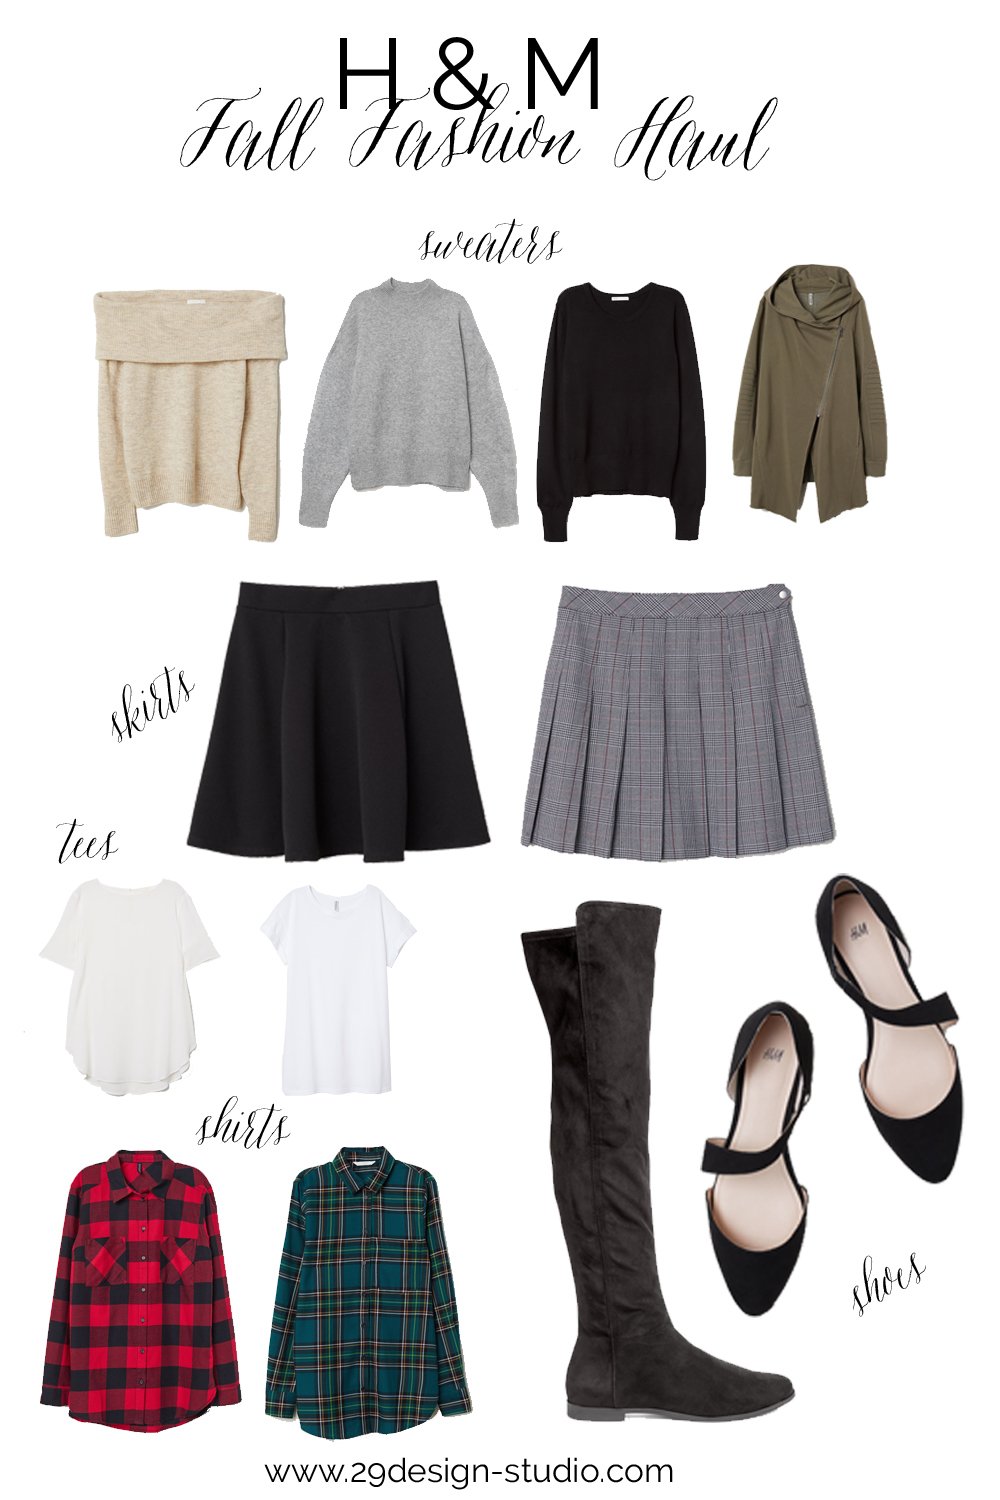 H&M Fall Fashion Haul, Fall Capsule Wardrobe